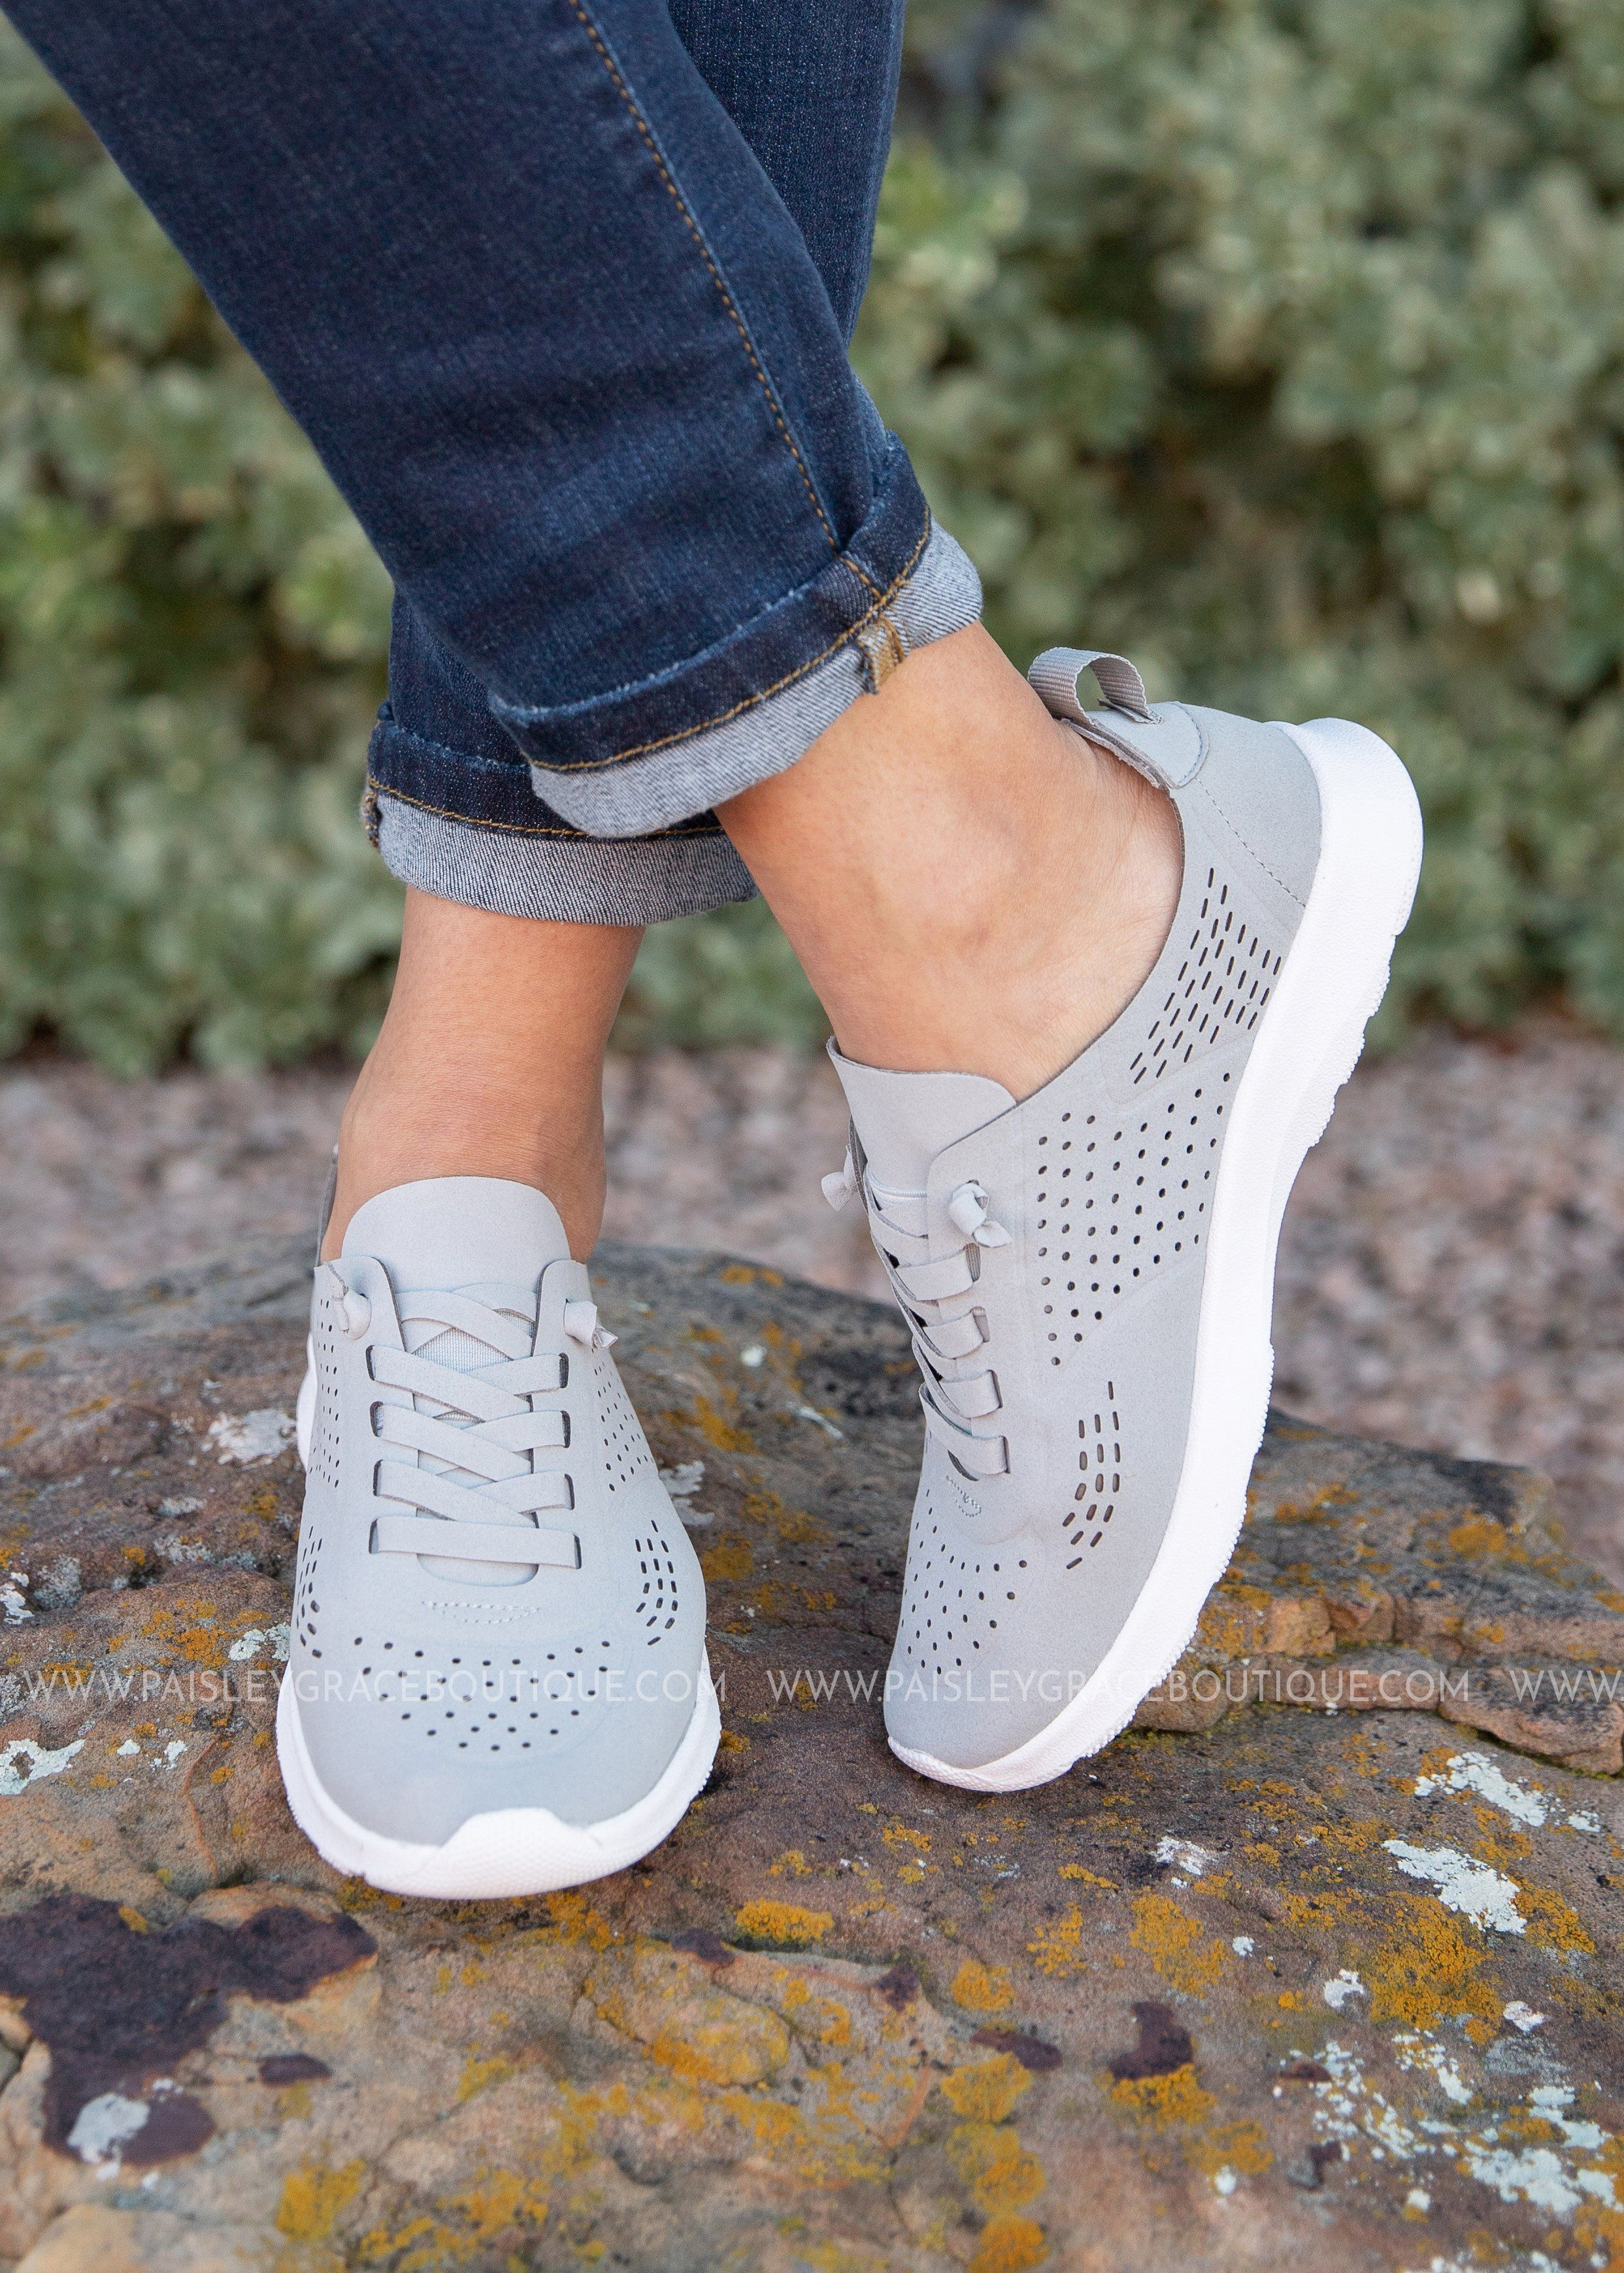 Sneakers fashion outfits, Casual girl